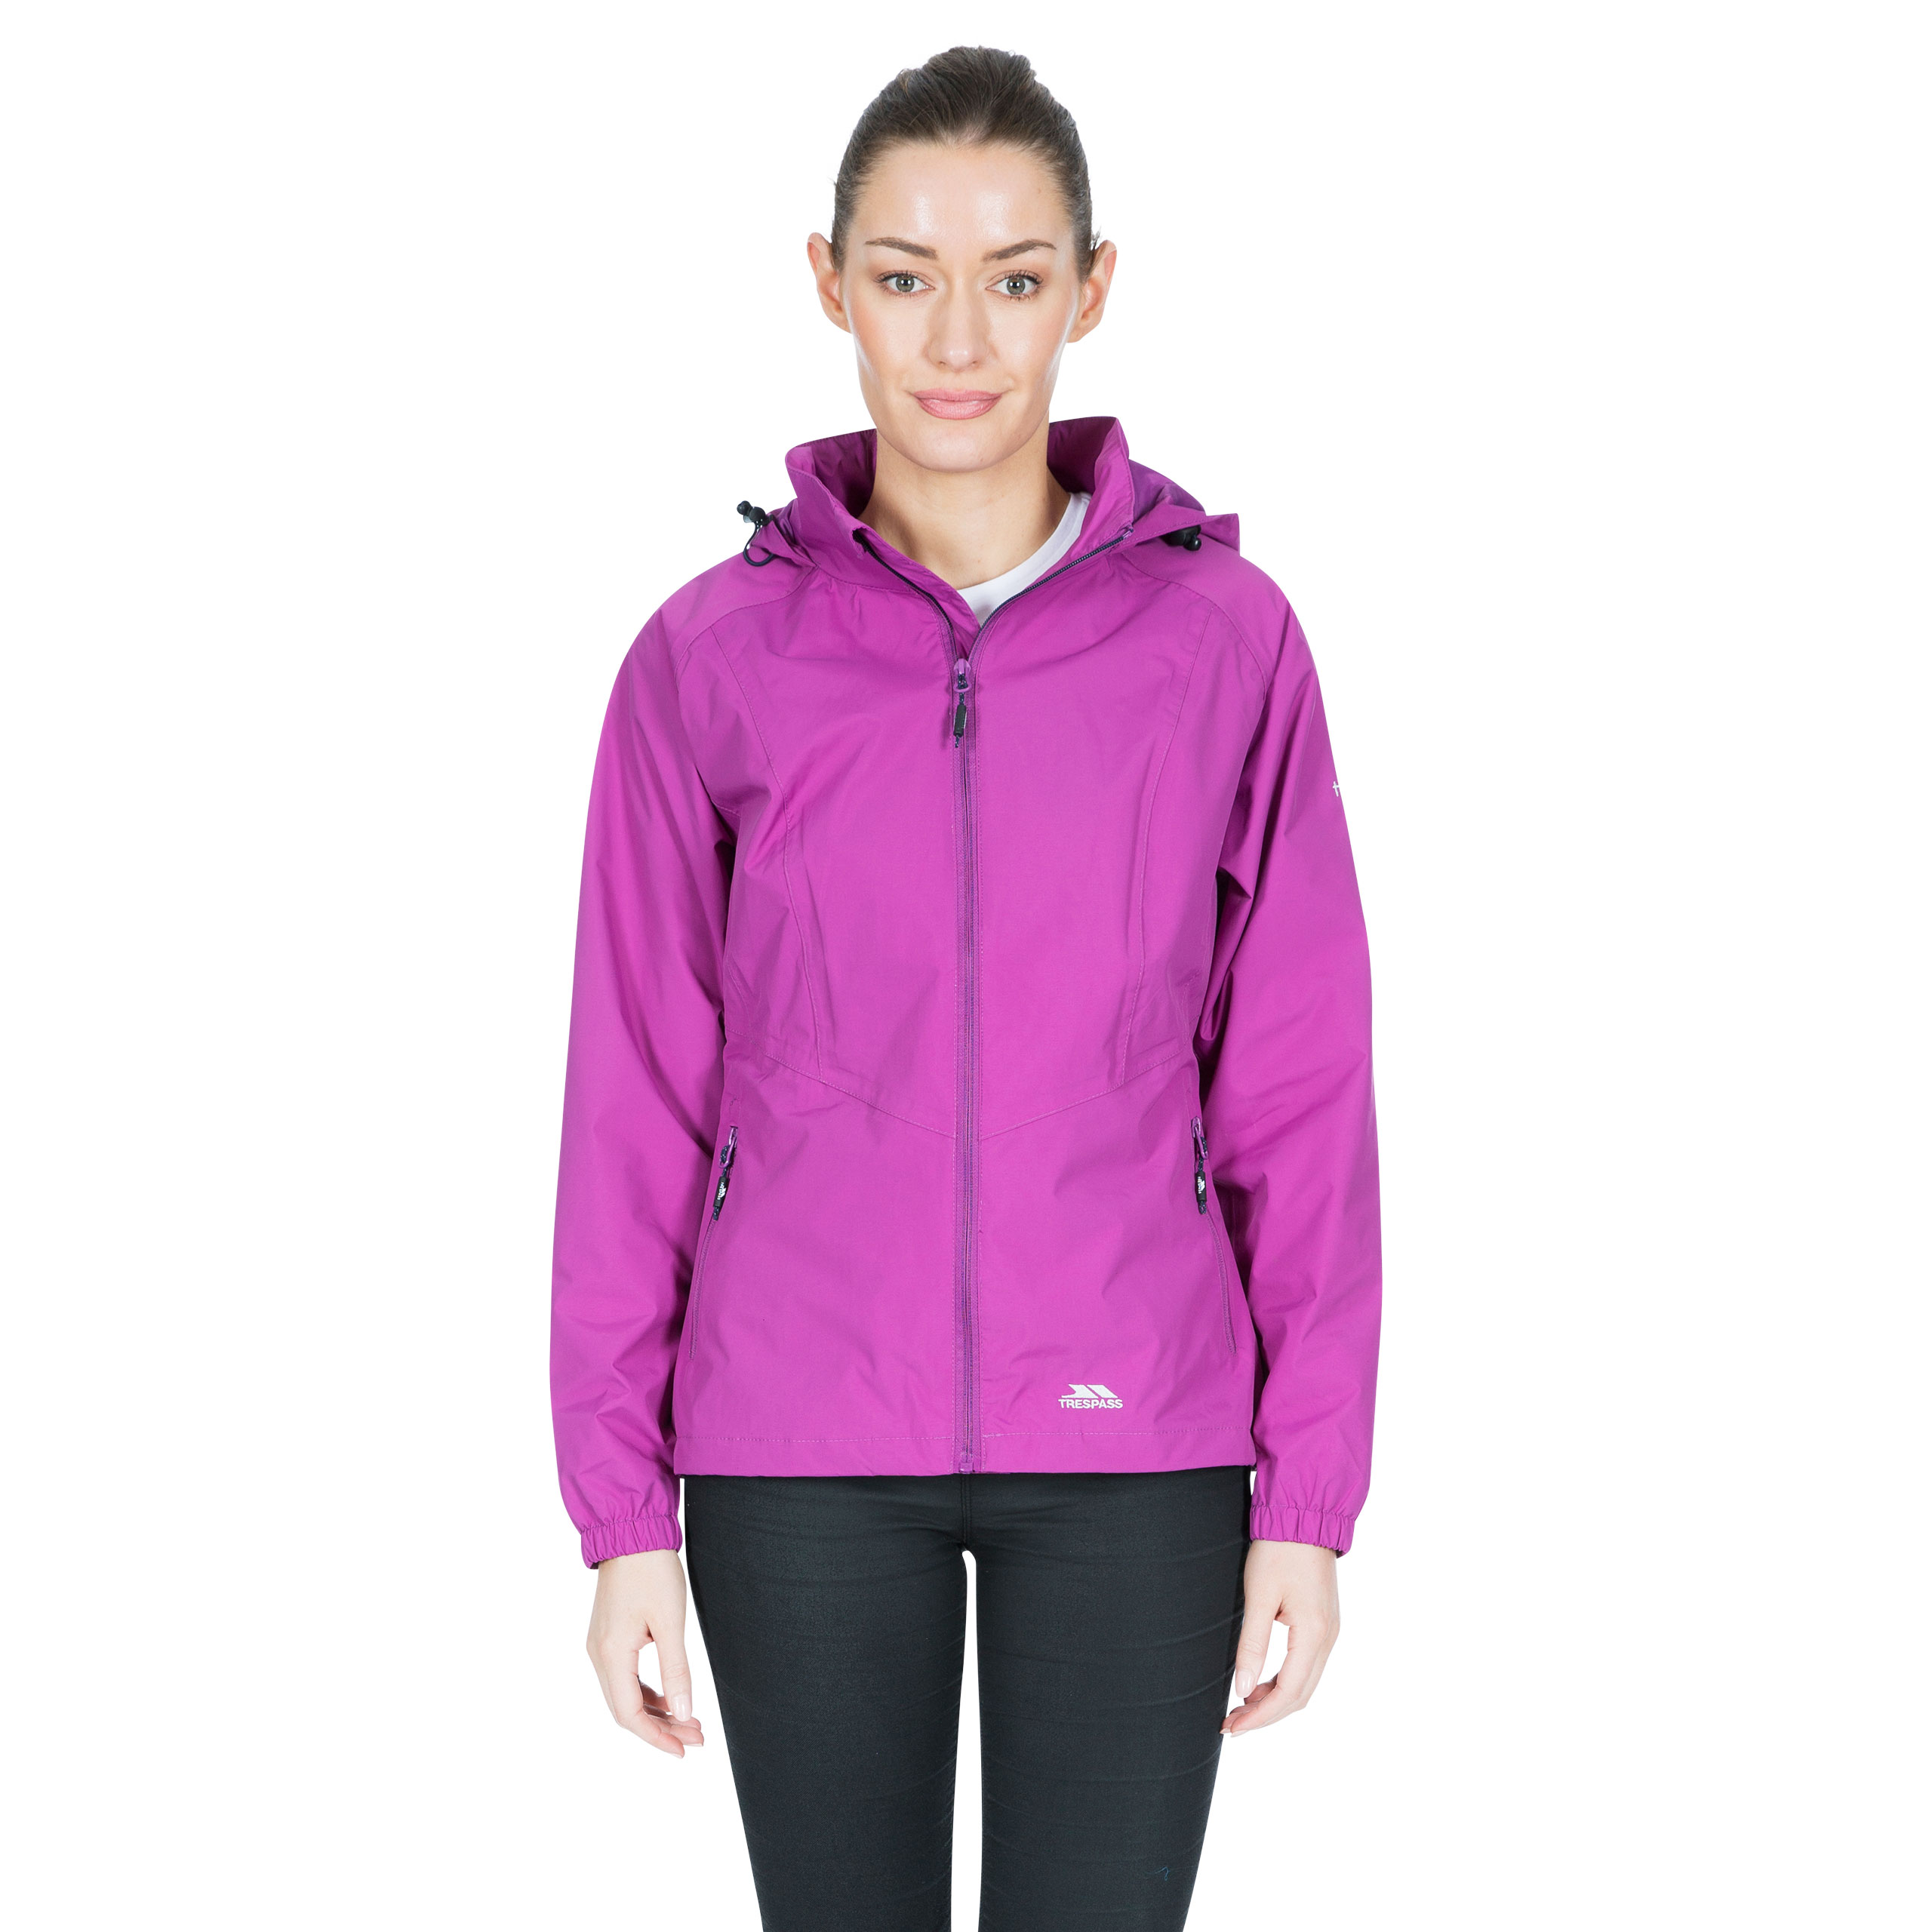 Trespass-Blyton-Womens-Waterproof-Jacket-With-Hood-in-Black-Navy-Pink-Blue thumbnail 18